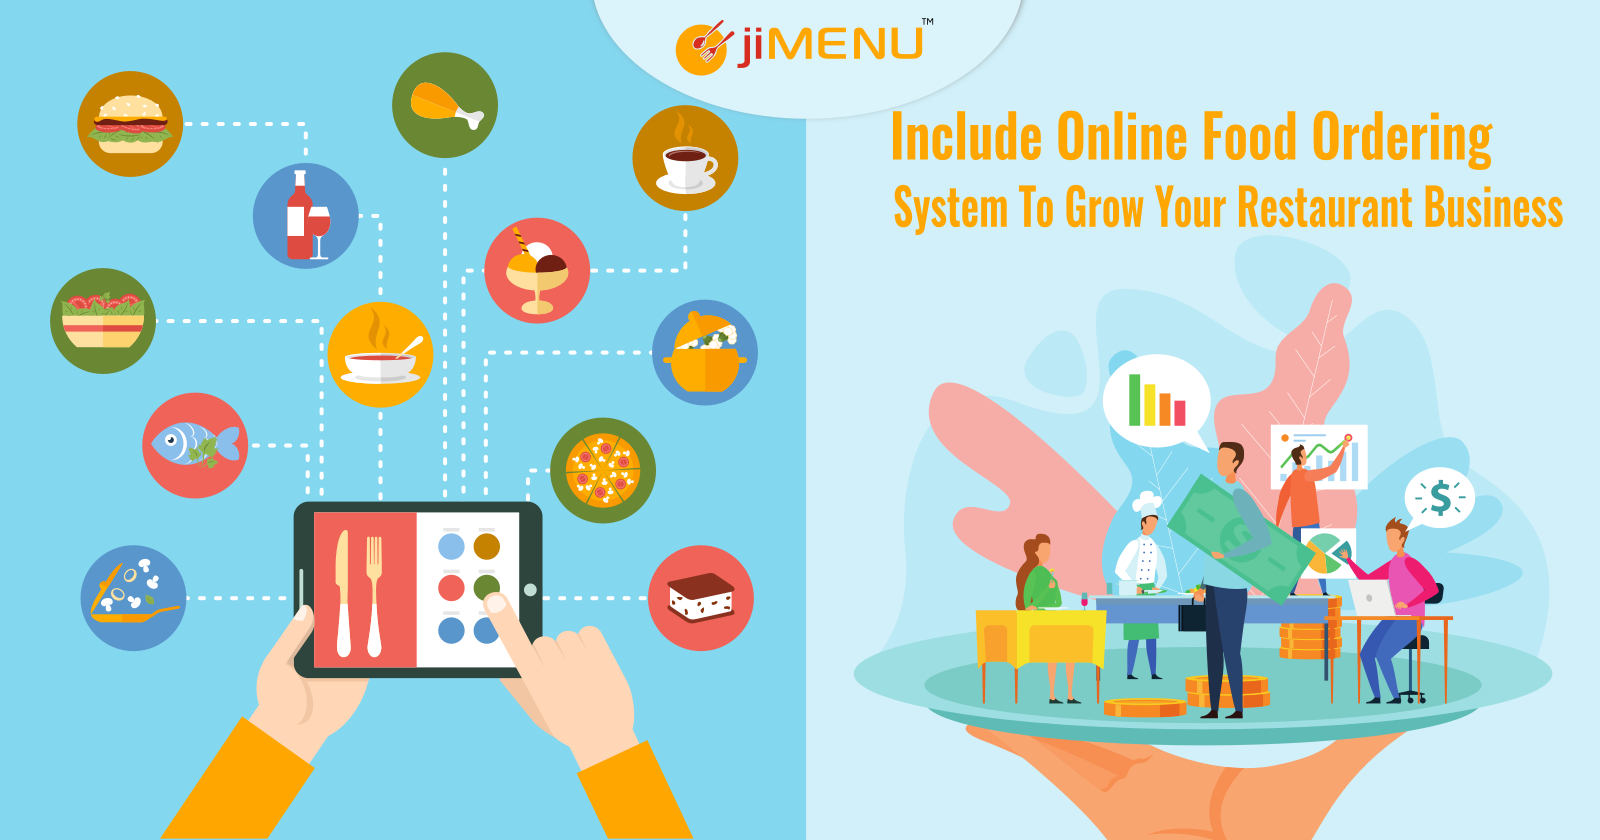 Include Online Food Ordering System To Grow Your Restaurant Business